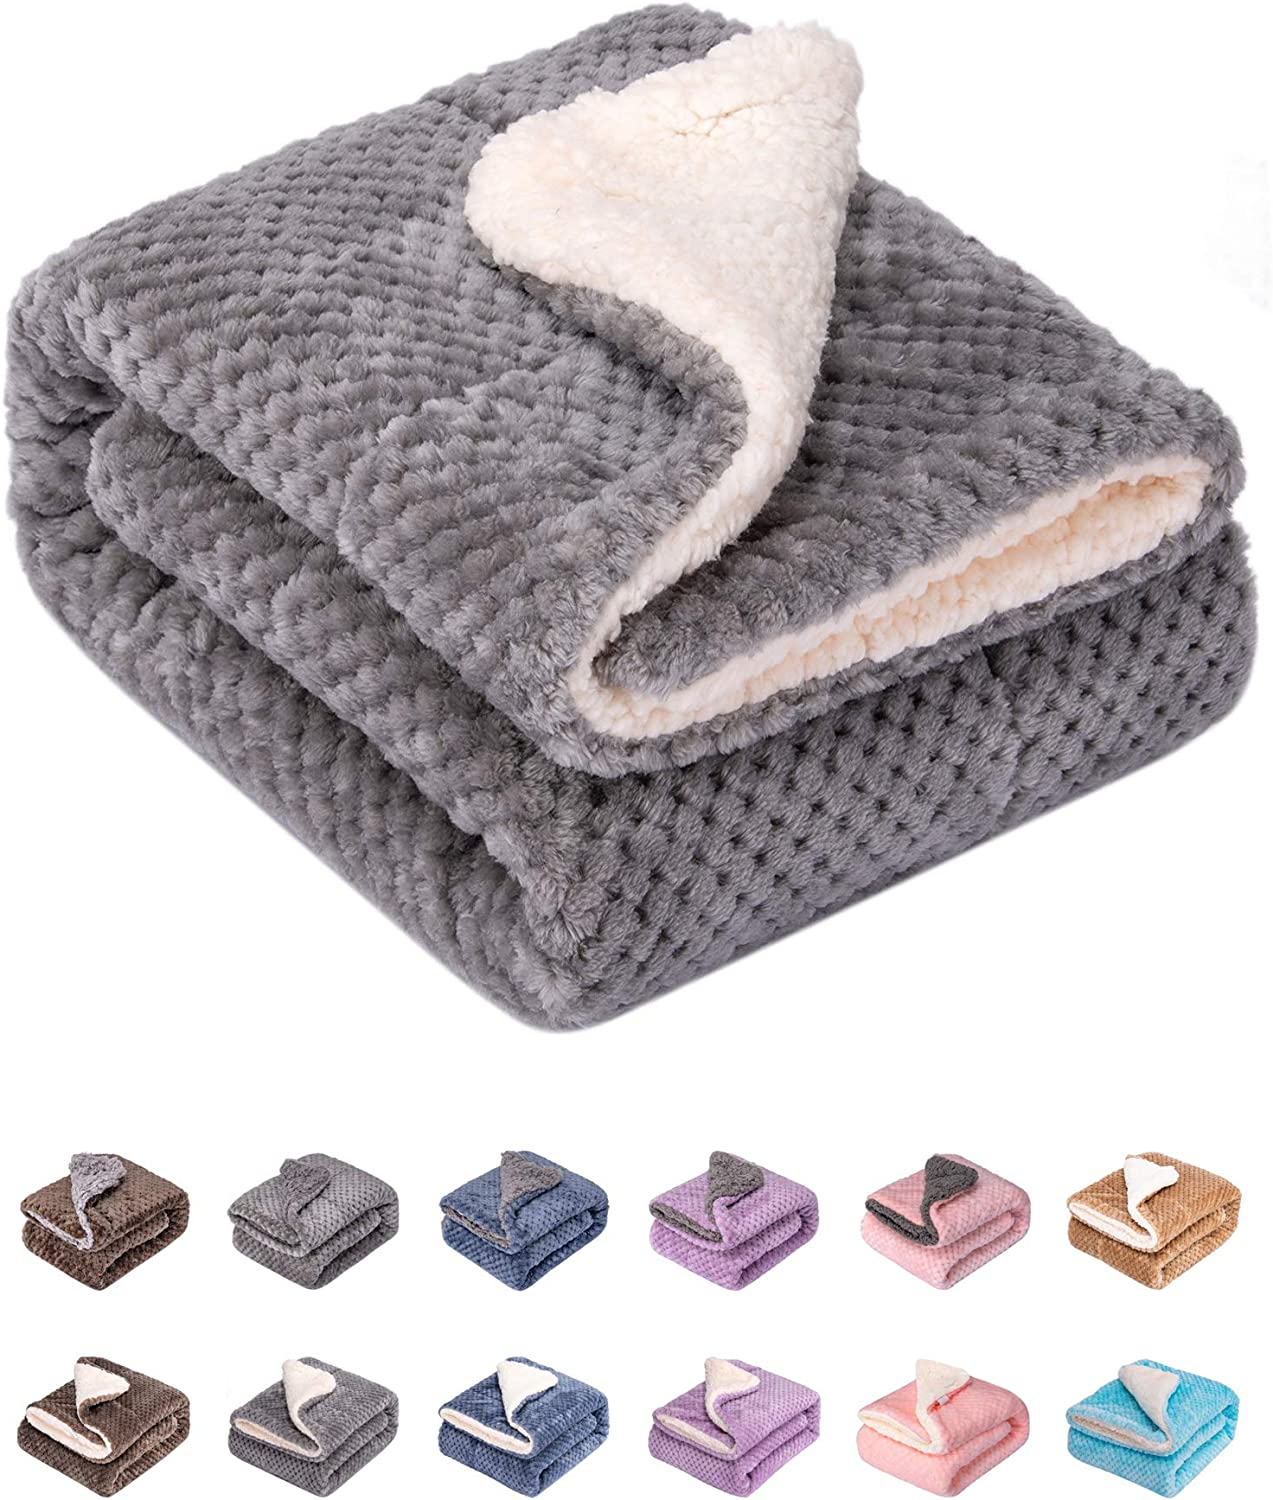 """Fuzzy Dog Blanket or Cat Blanket or Pet Blanket, Warm and Soft, Plush Fleece Receiving Blankets for Dog Bed and Cat Bed , Couch, Sofa, Travel and Outdoor, Camping (Blanket (32"""" x 40""""), DW-Flint Gray): Kitchen & Dining"""